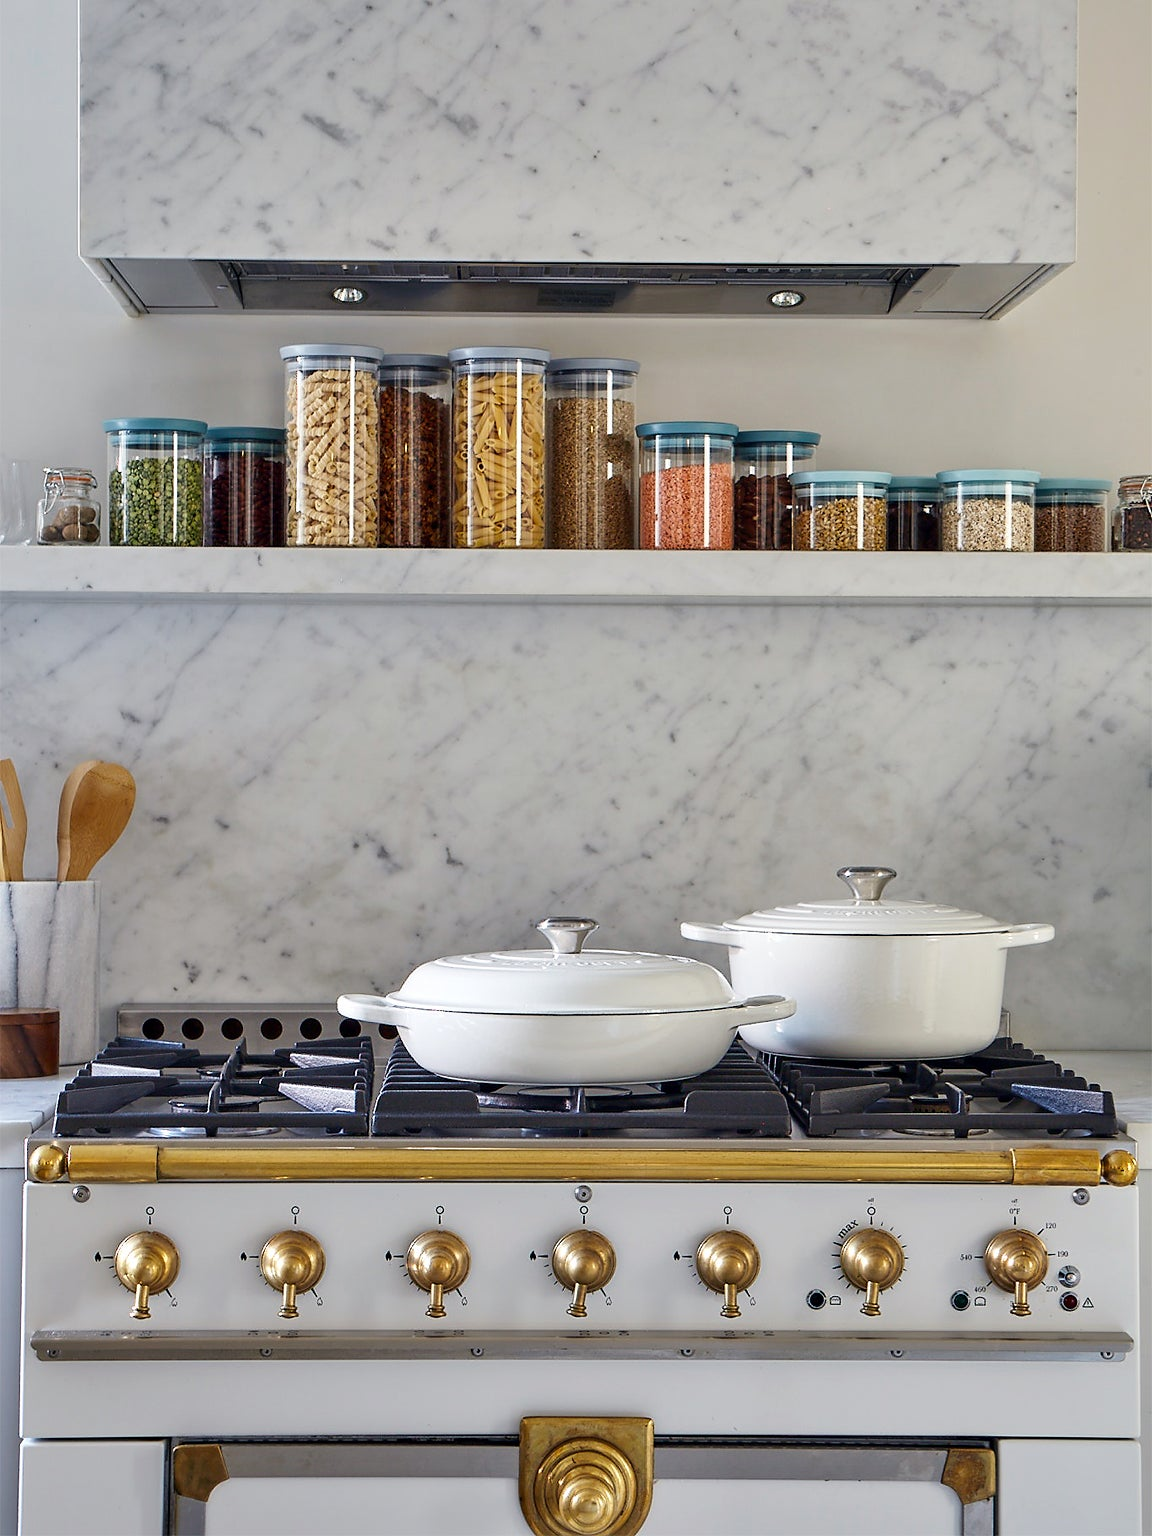 Le Creuset Moved Its Factory-to-Table Sale Online Just in Time for Easter